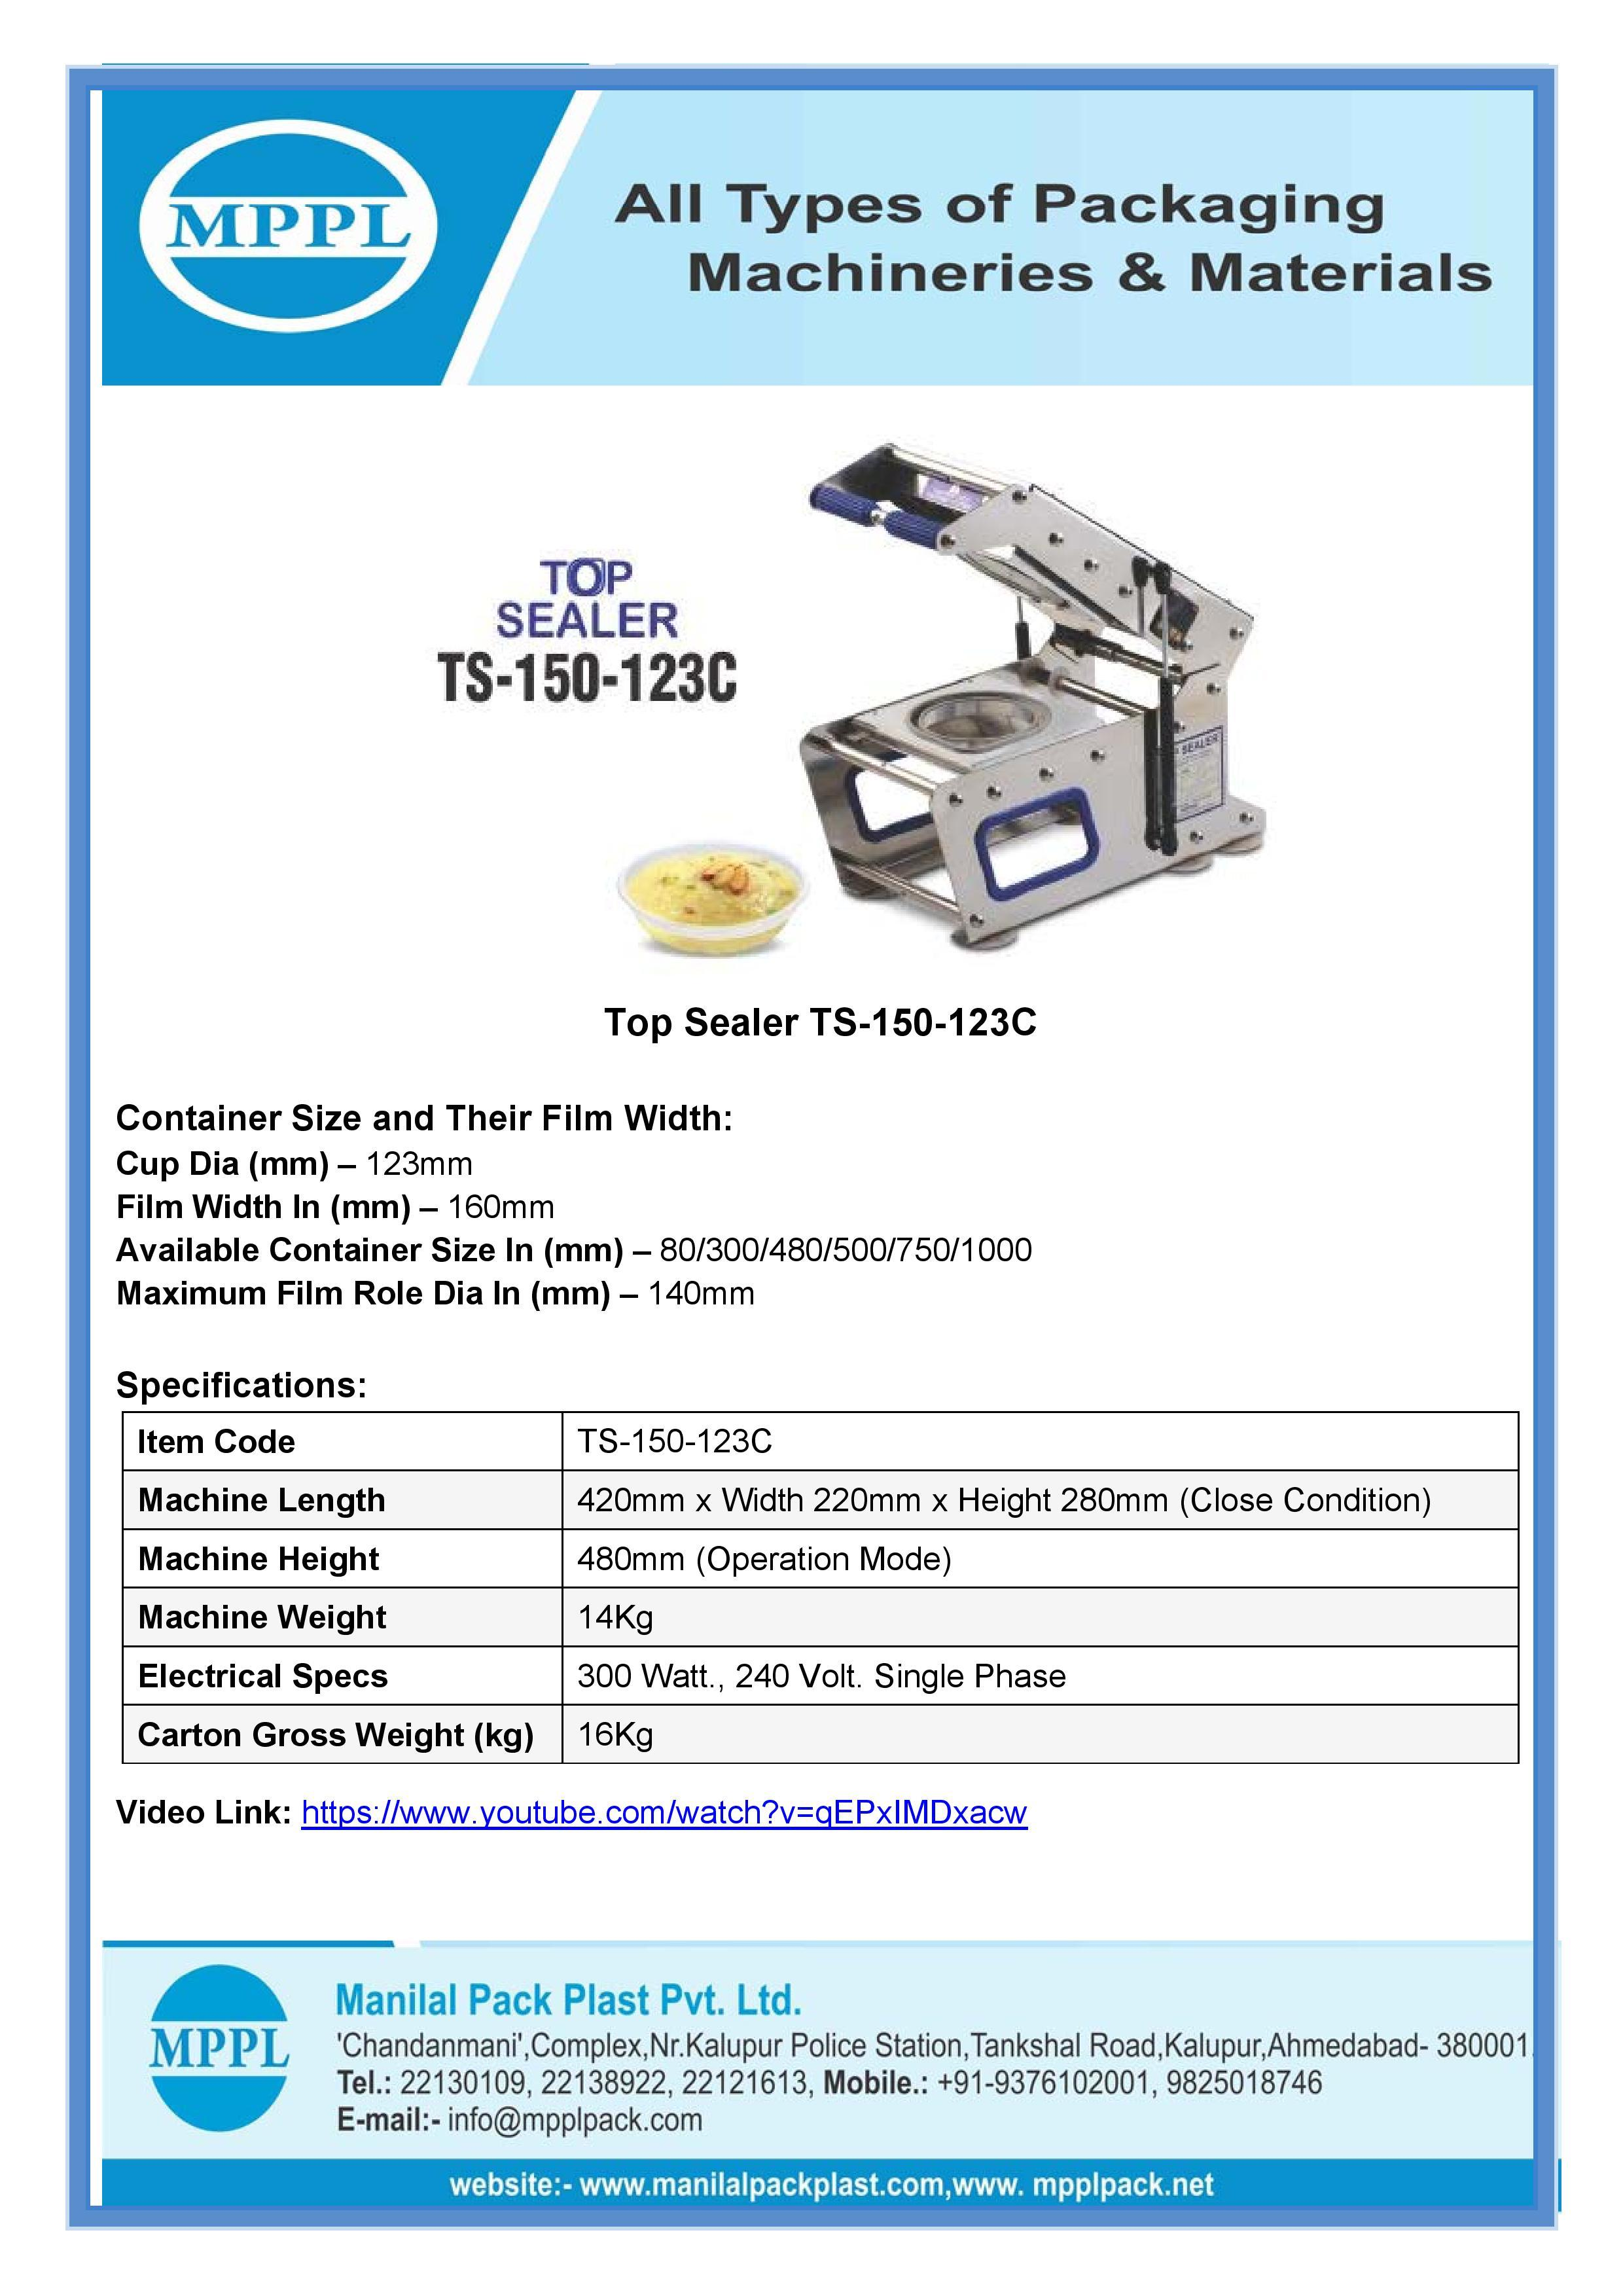 Top Sealer TS-150-123C